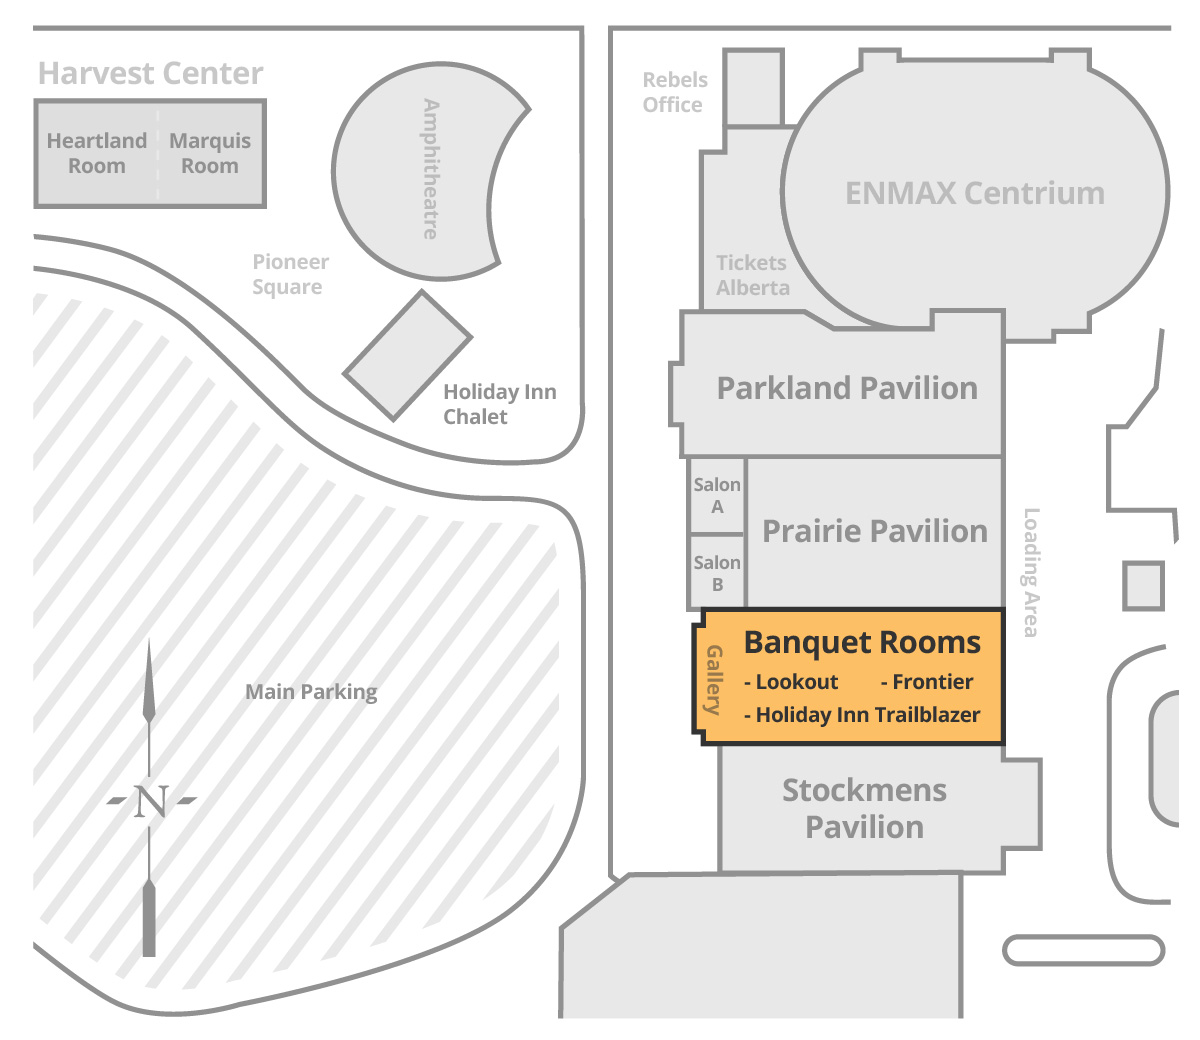 Banquet Rooms Location